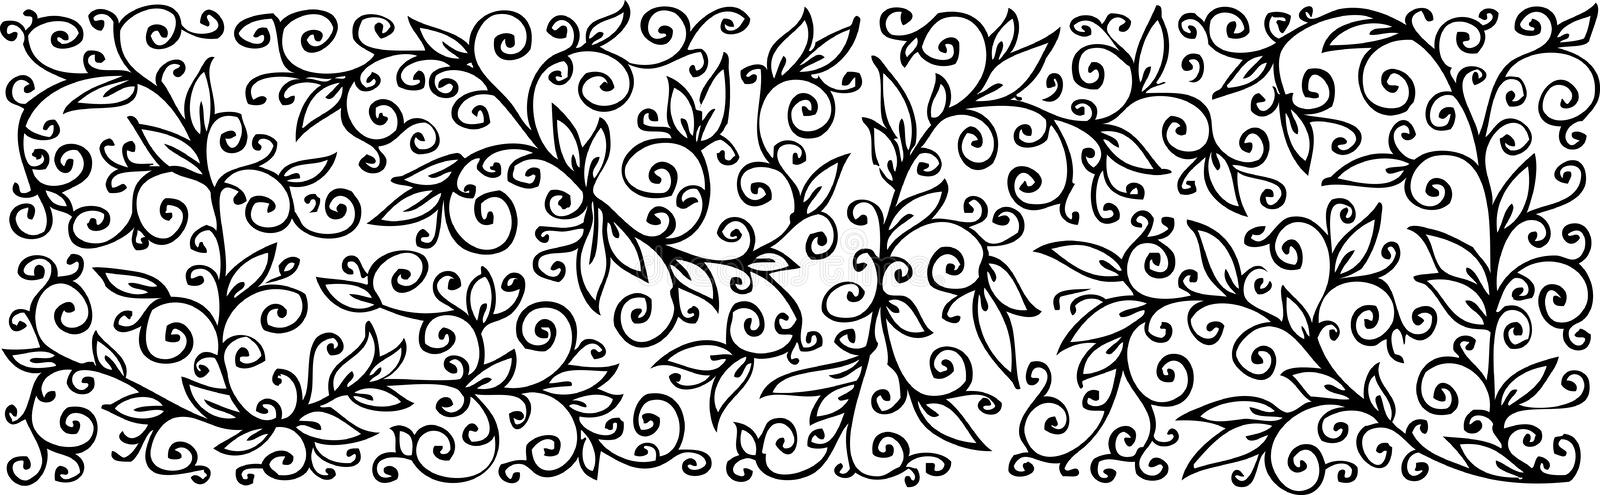 Floral Texture CCCI royalty free illustration